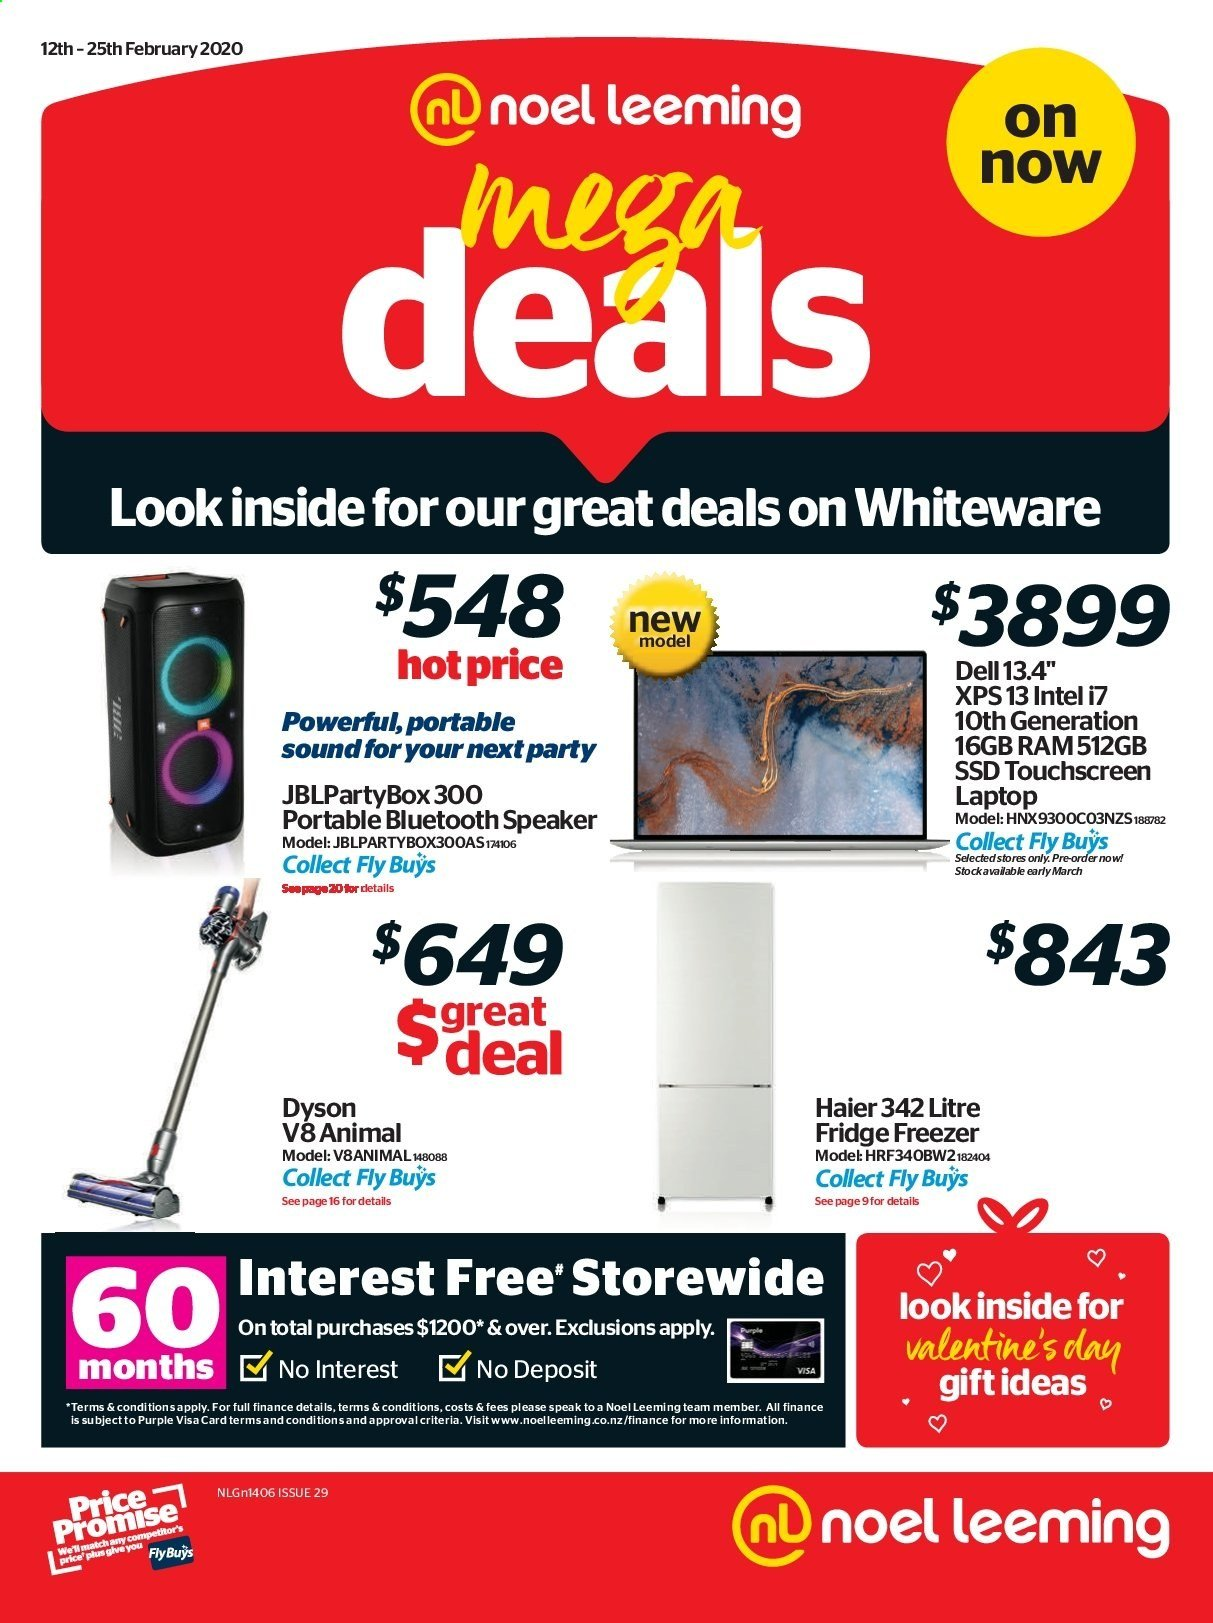 Noel Leeming mailer - 12.02.2020 - 25.02.2020 - Sales products - Dell, Haier, laptop, touchscreen laptop, Intel, speaker, bluetooth speaker, freezer, refrigerator, fridge, Dyson, car battery. Page 1.